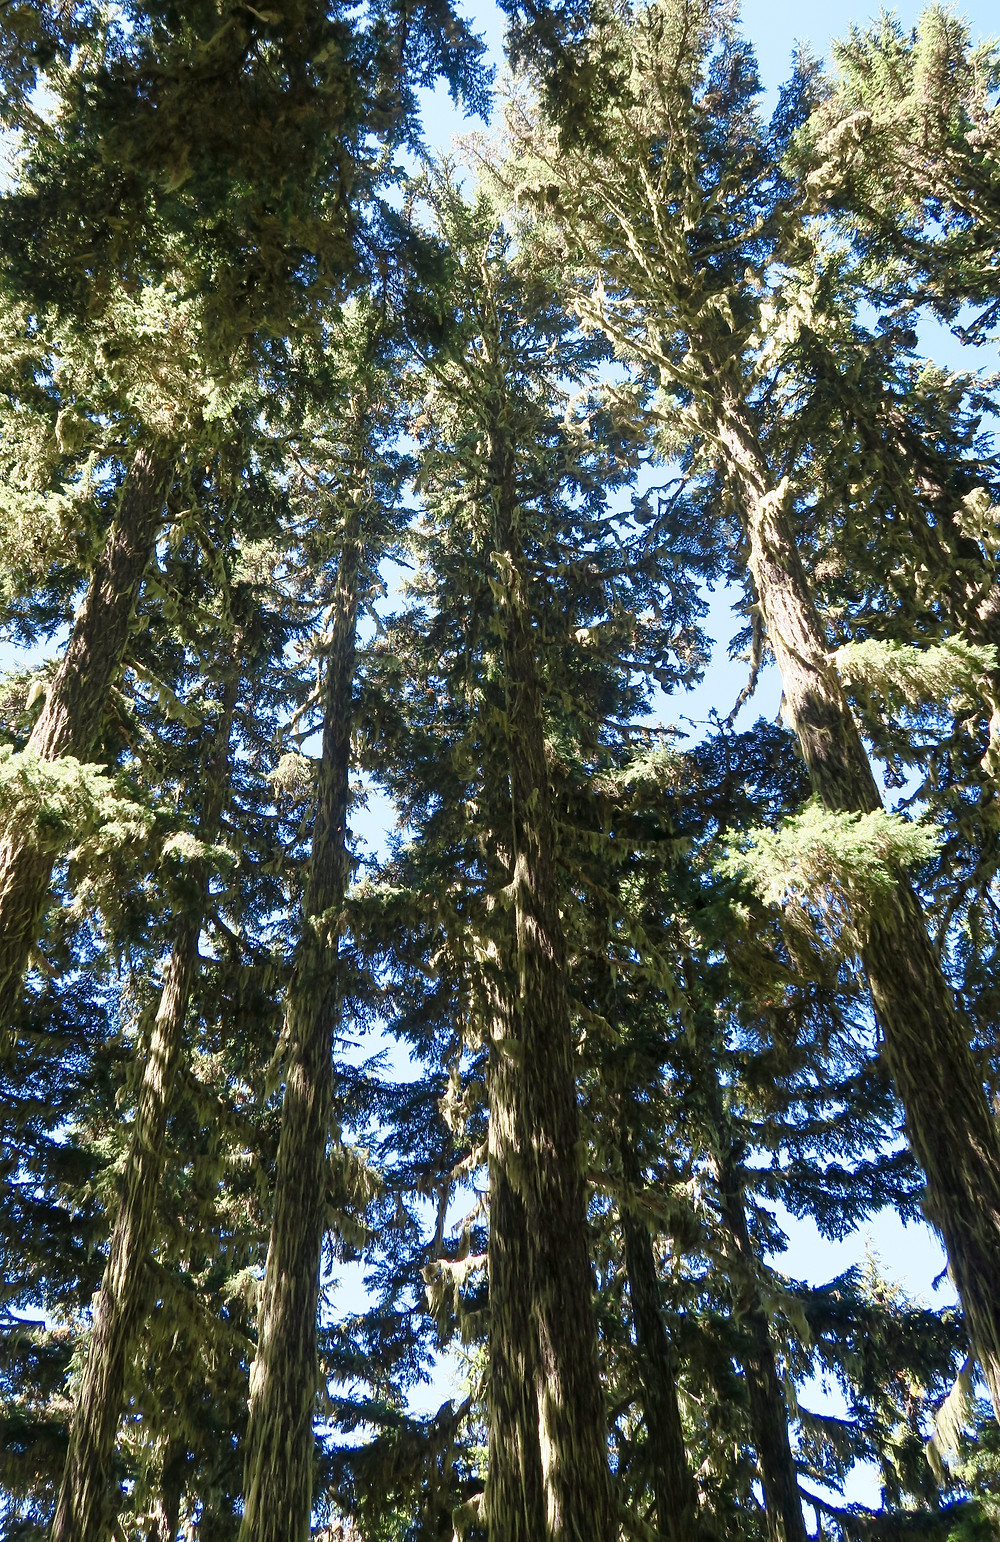 Tall thin pine trees reach upward with trunks covered in light green moss.